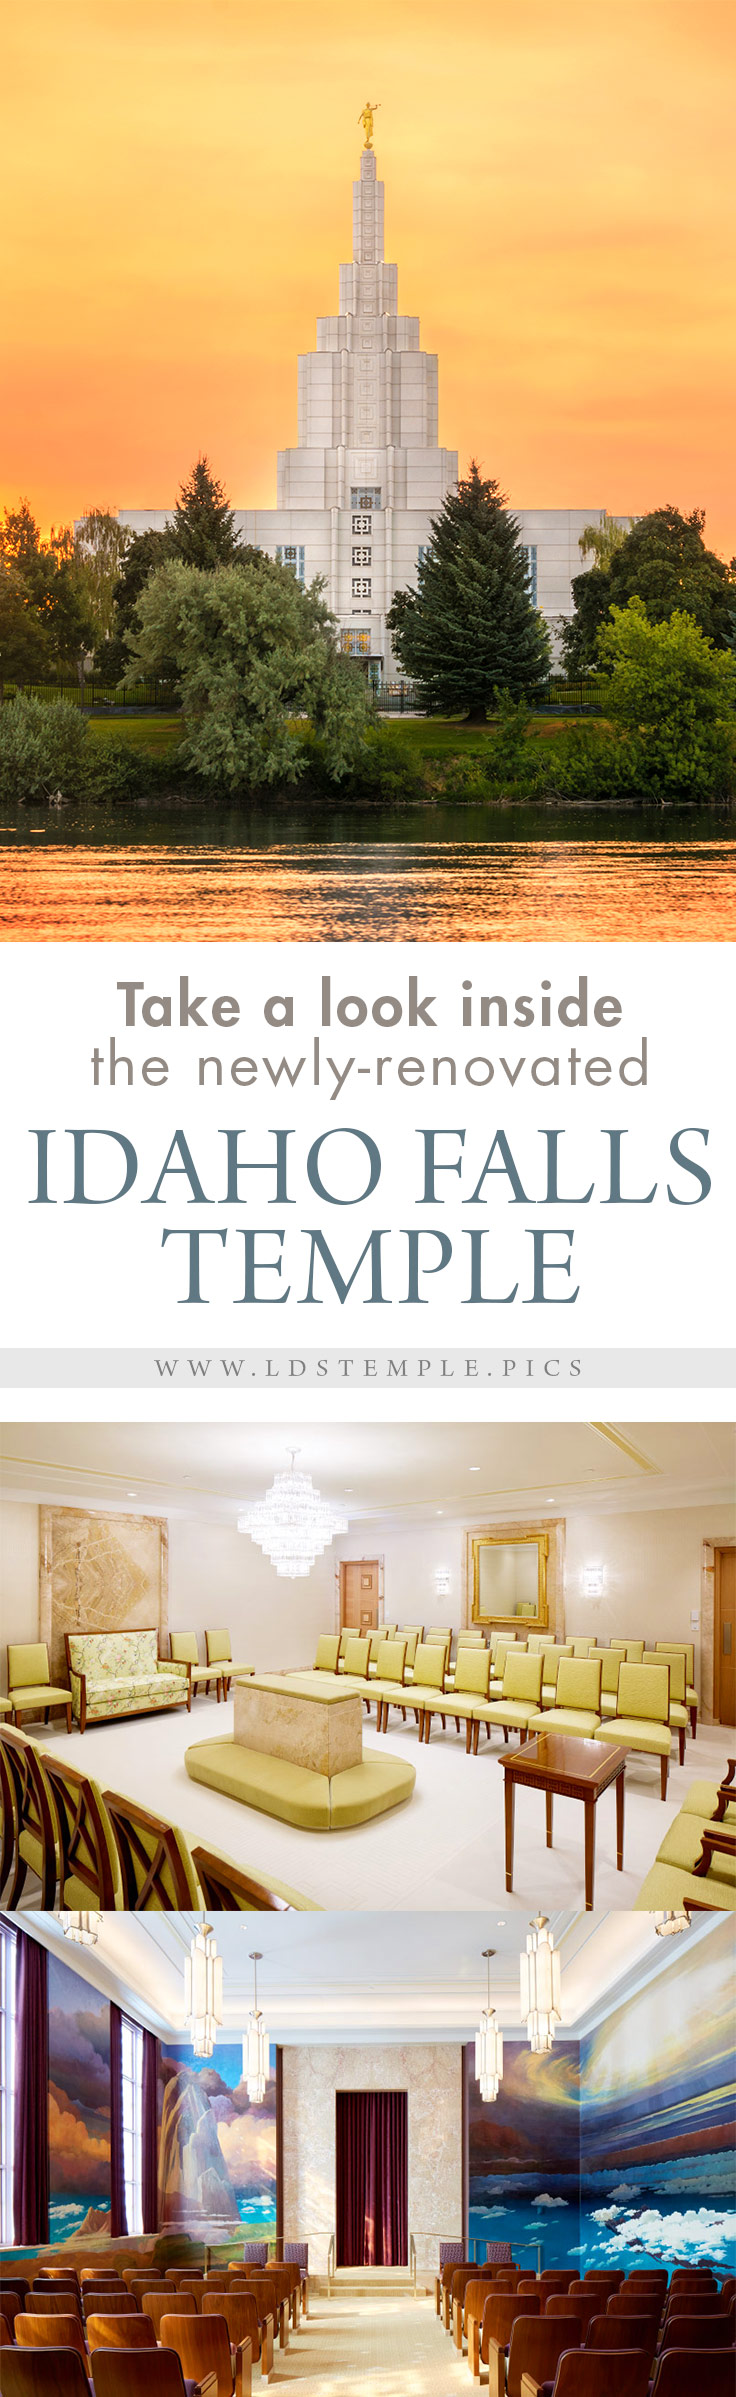 Take a Look Inside the Newly-Renovated Idaho Falls Temple | After two years, the Idaho Falls Temple has finished renovations and will soon begin the open house and be re-dedicated. Here are some beautiful photos of the finished interior!